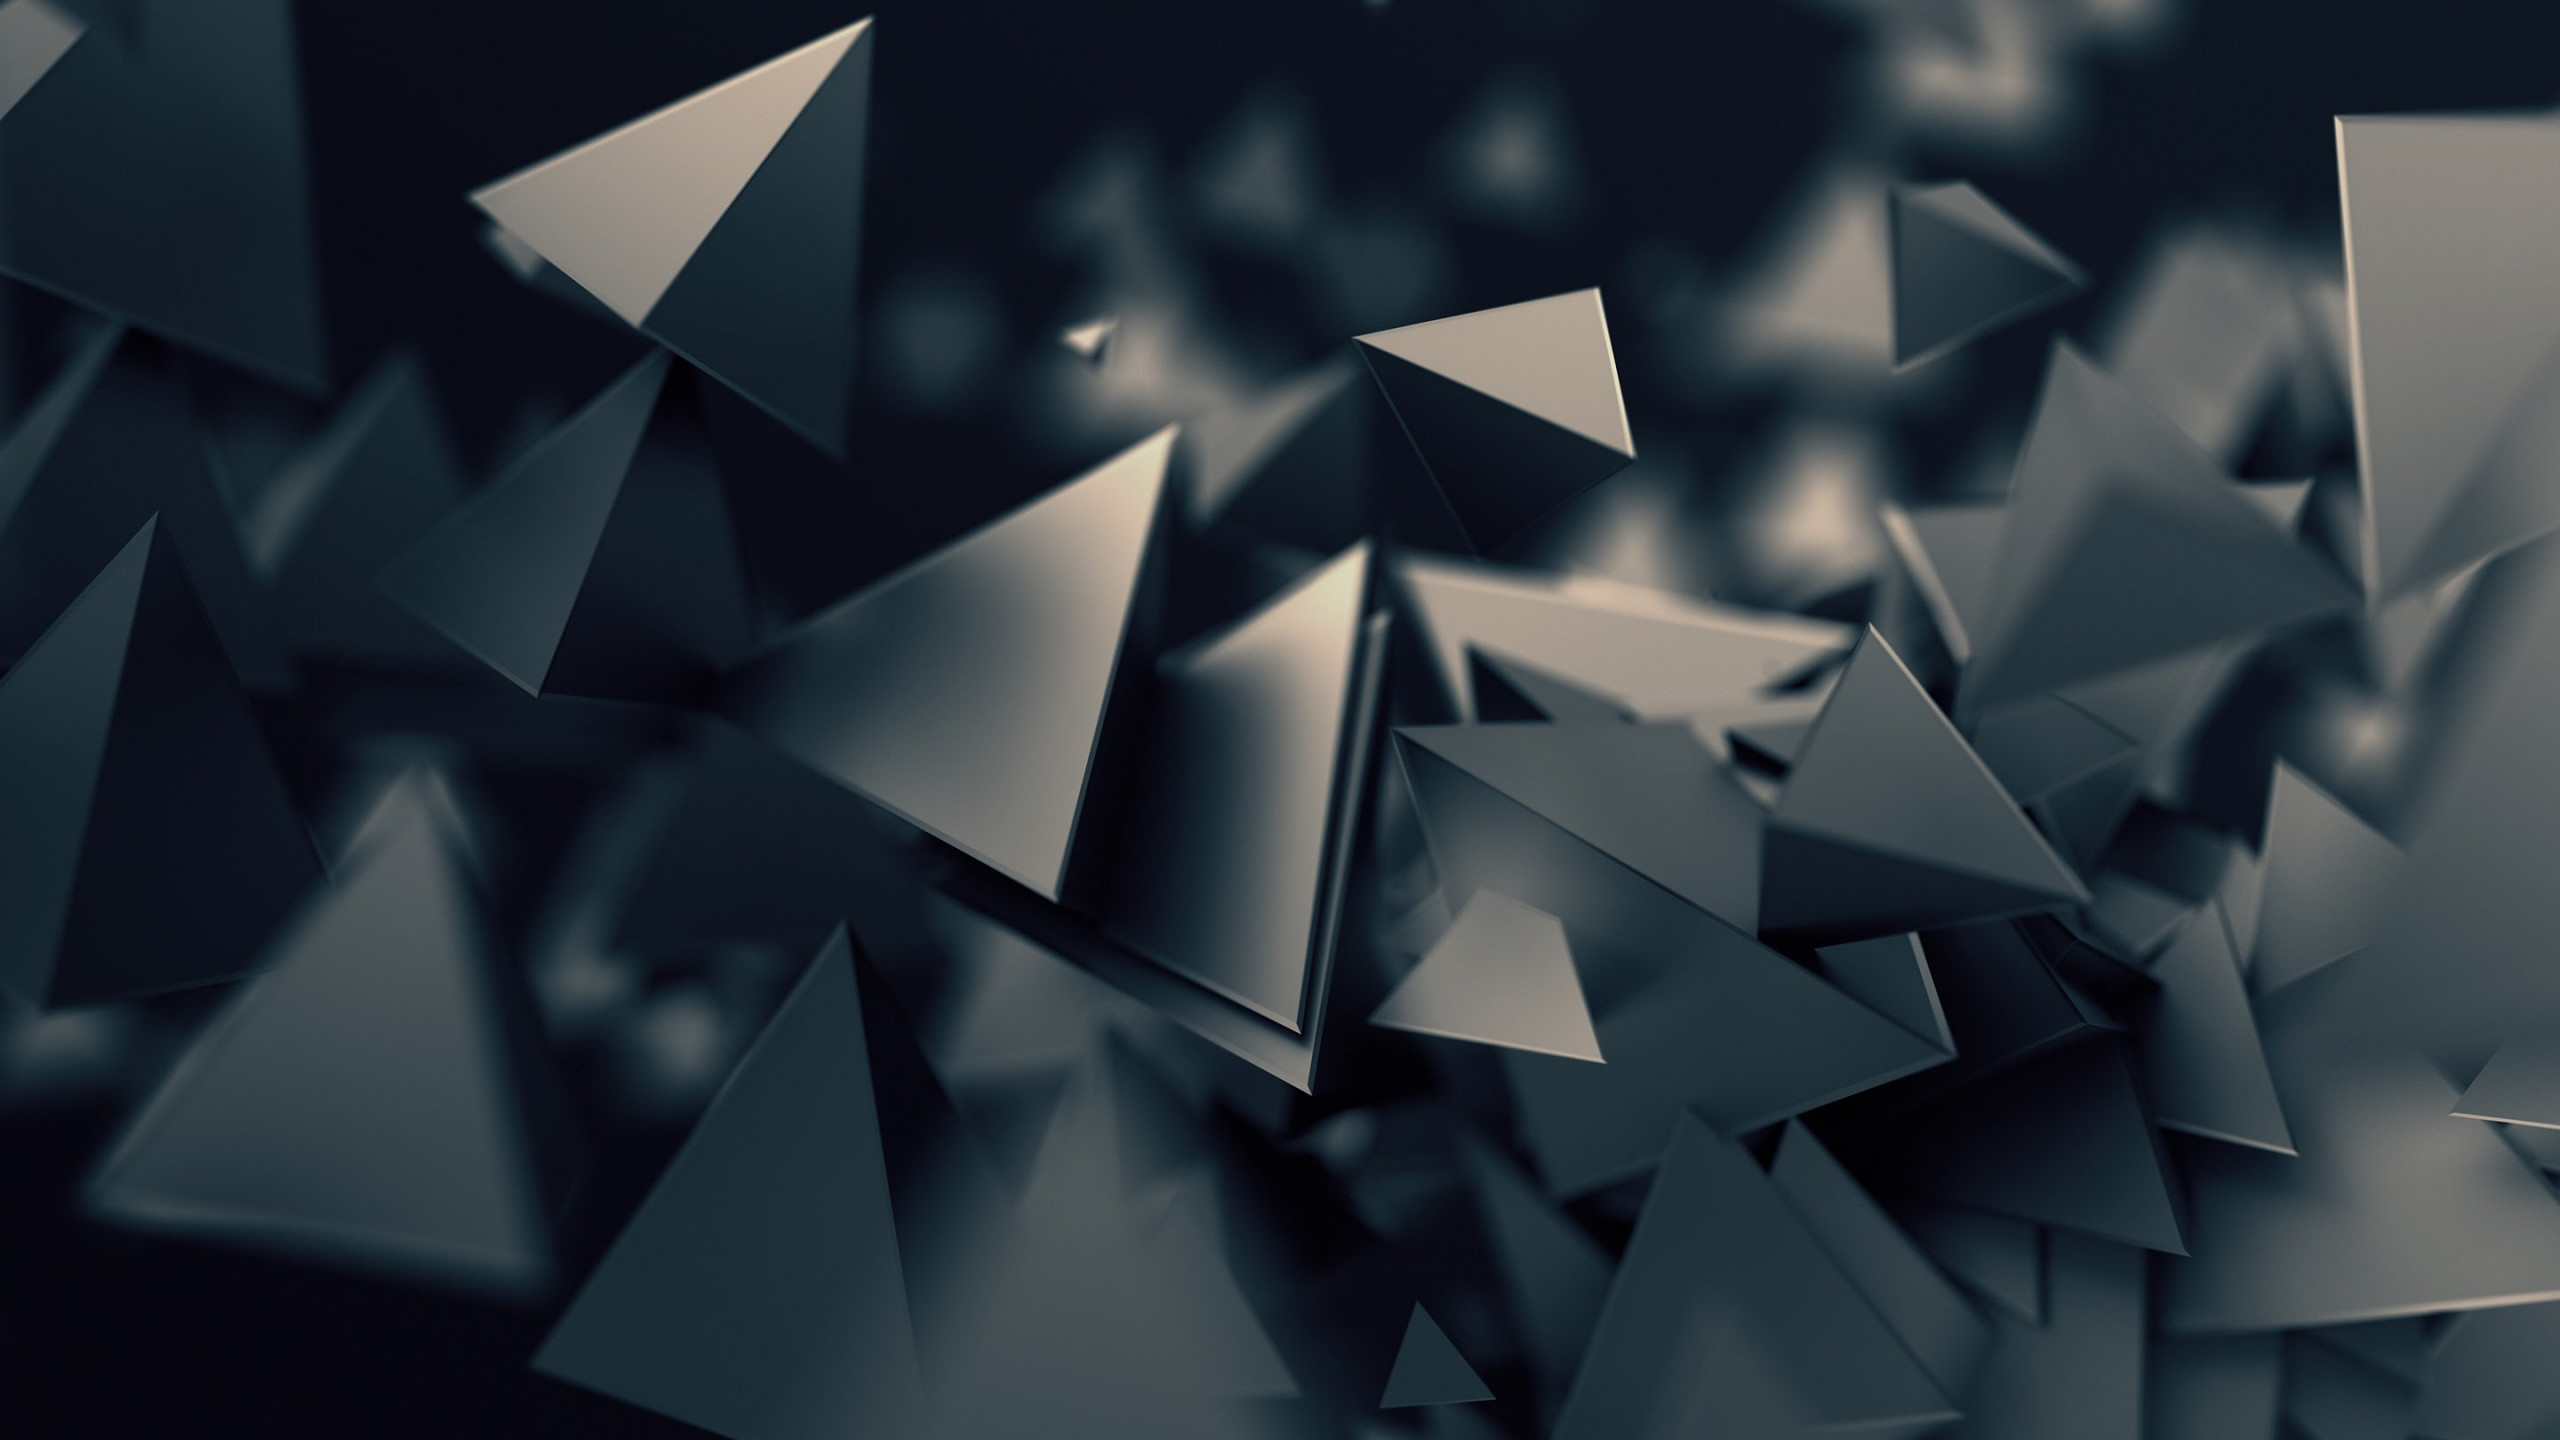 Triangular prisms | 2560x1440 wallpaper